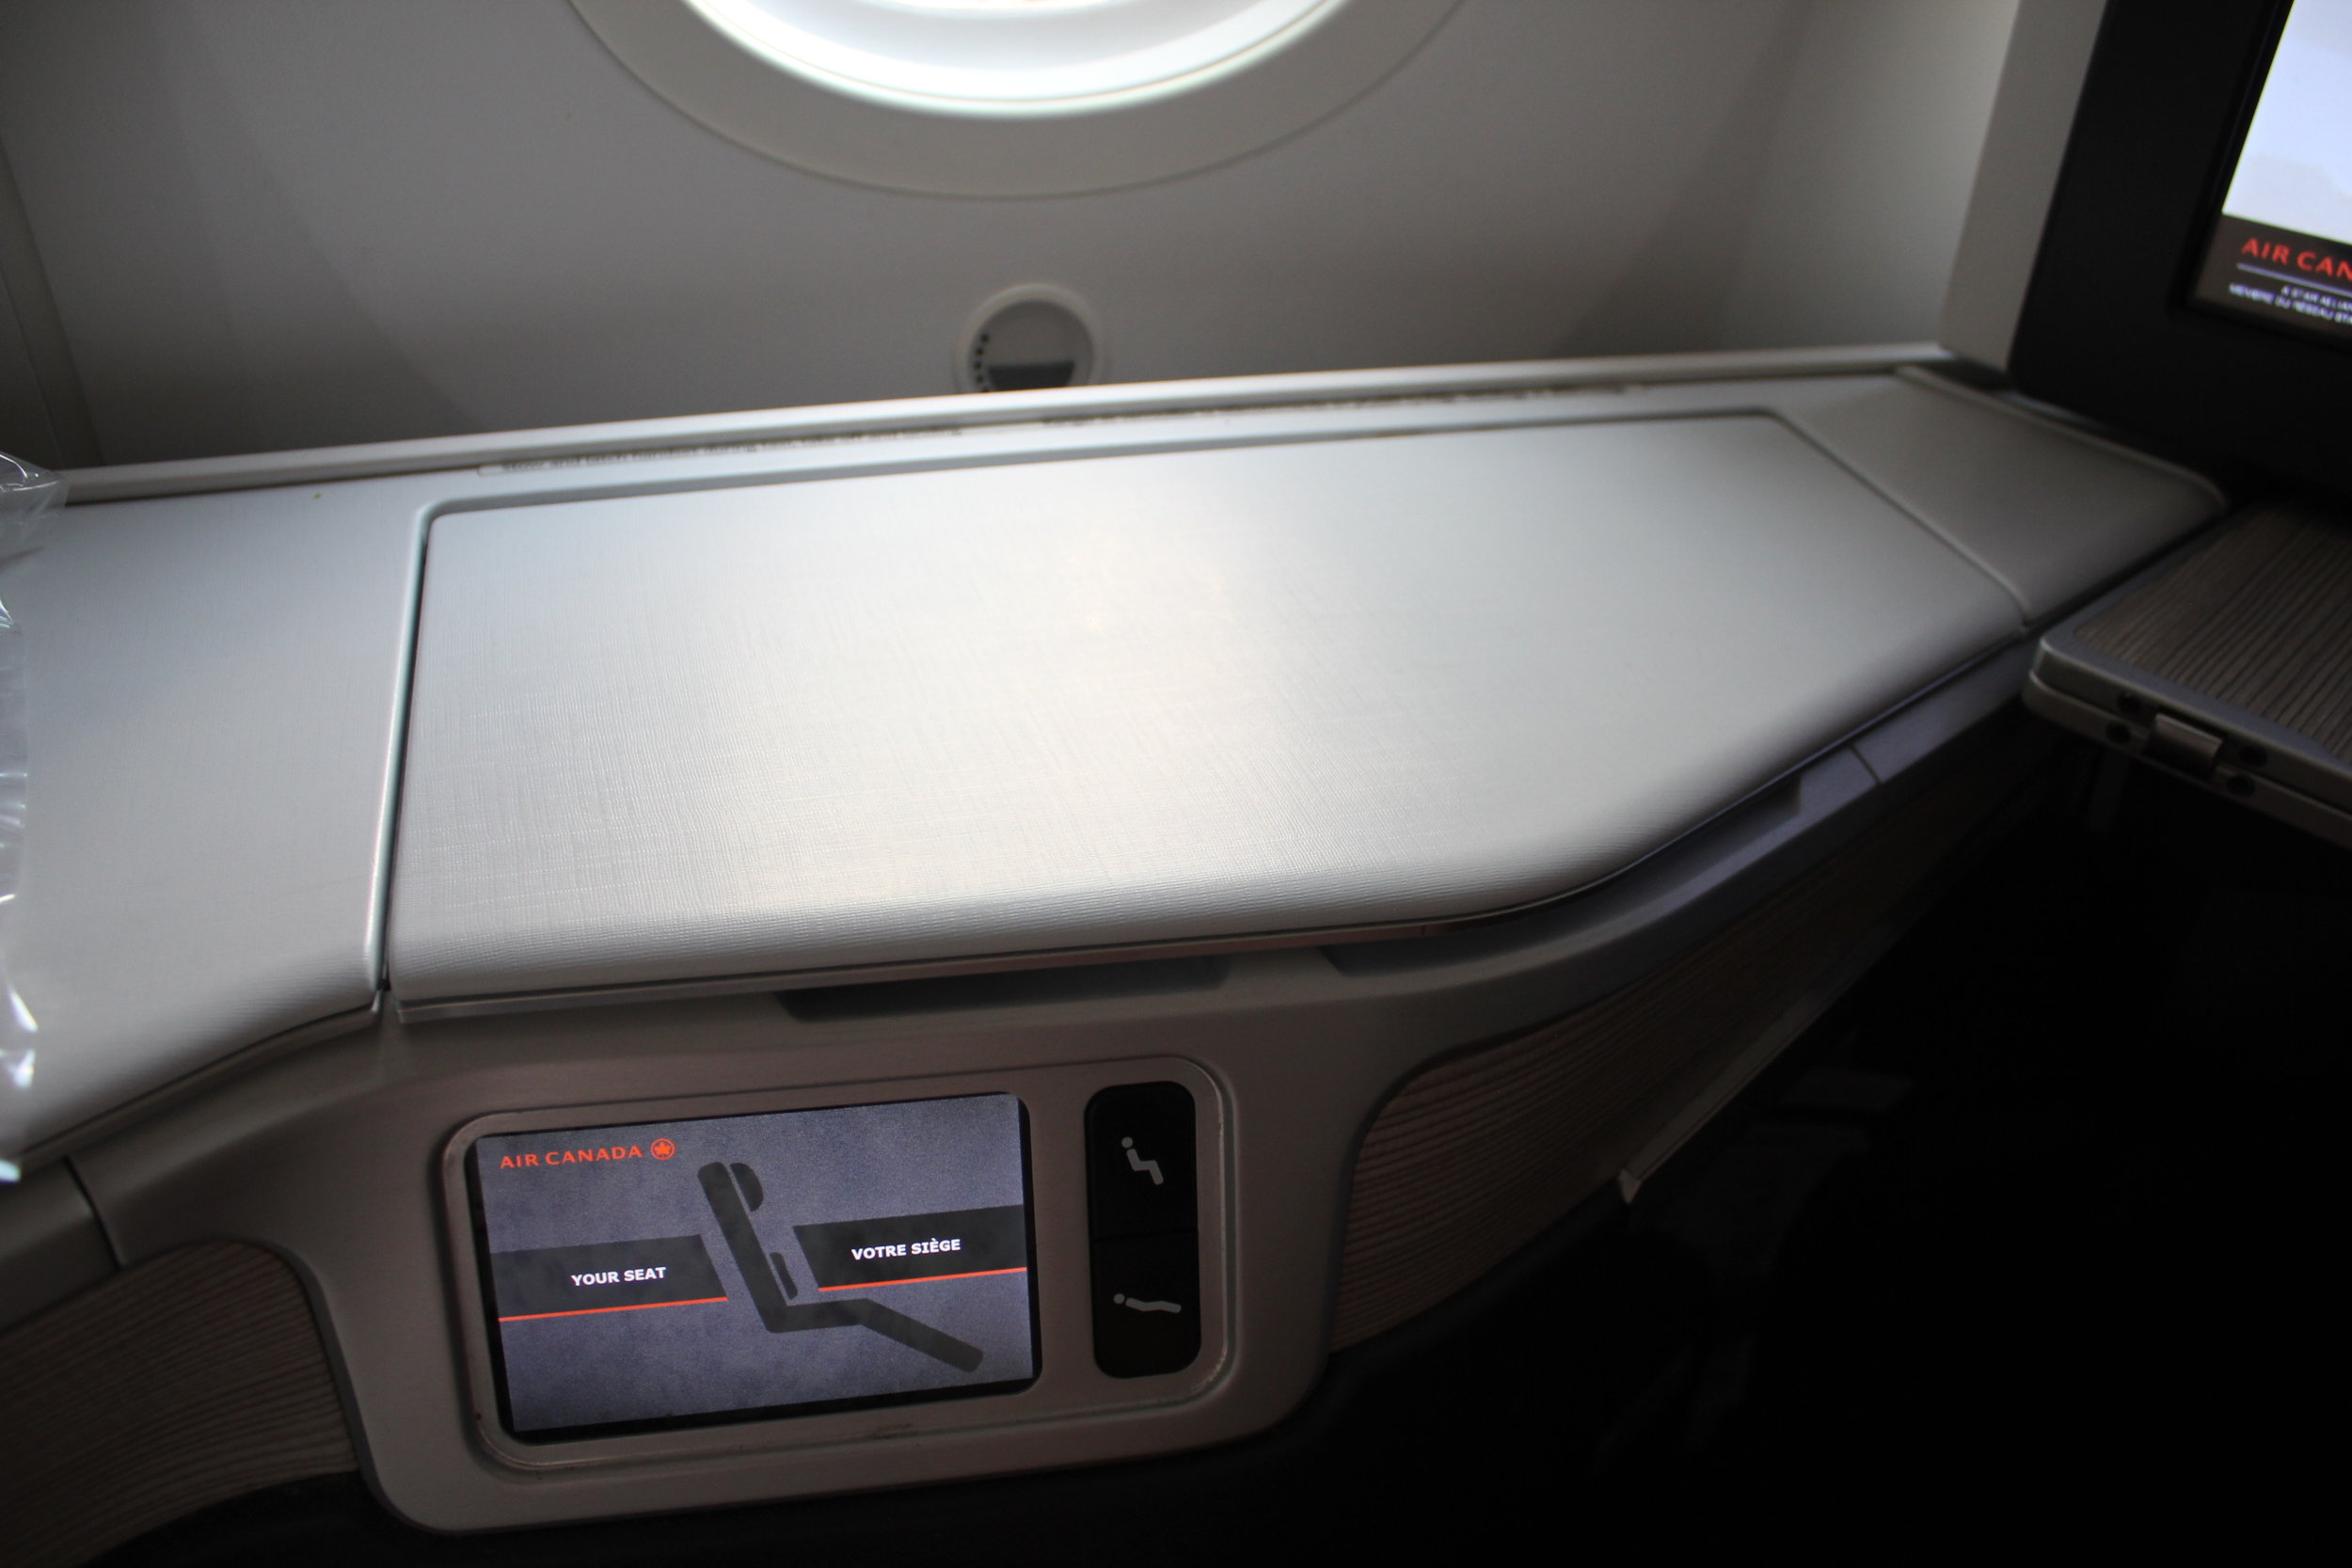 Air Canada business class – Surface space